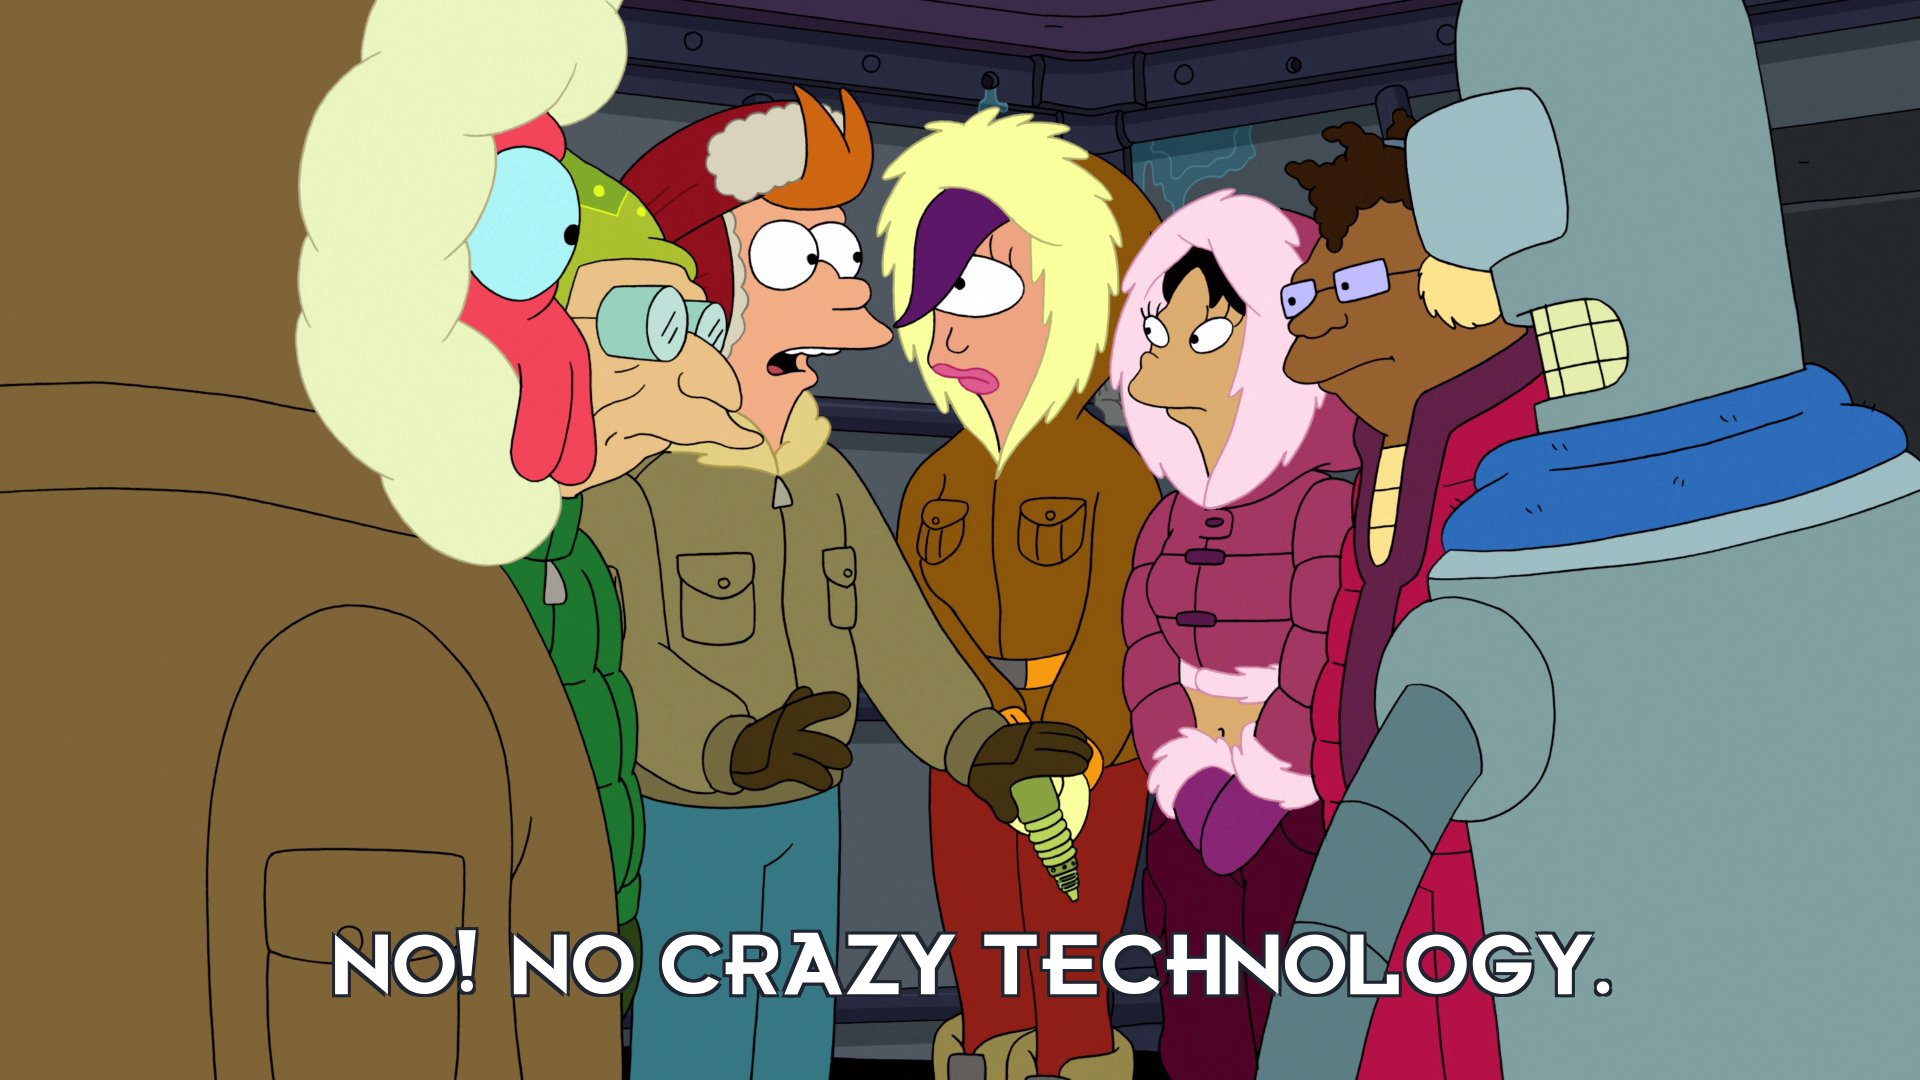 Philip J Fry: No! No crazy technology.